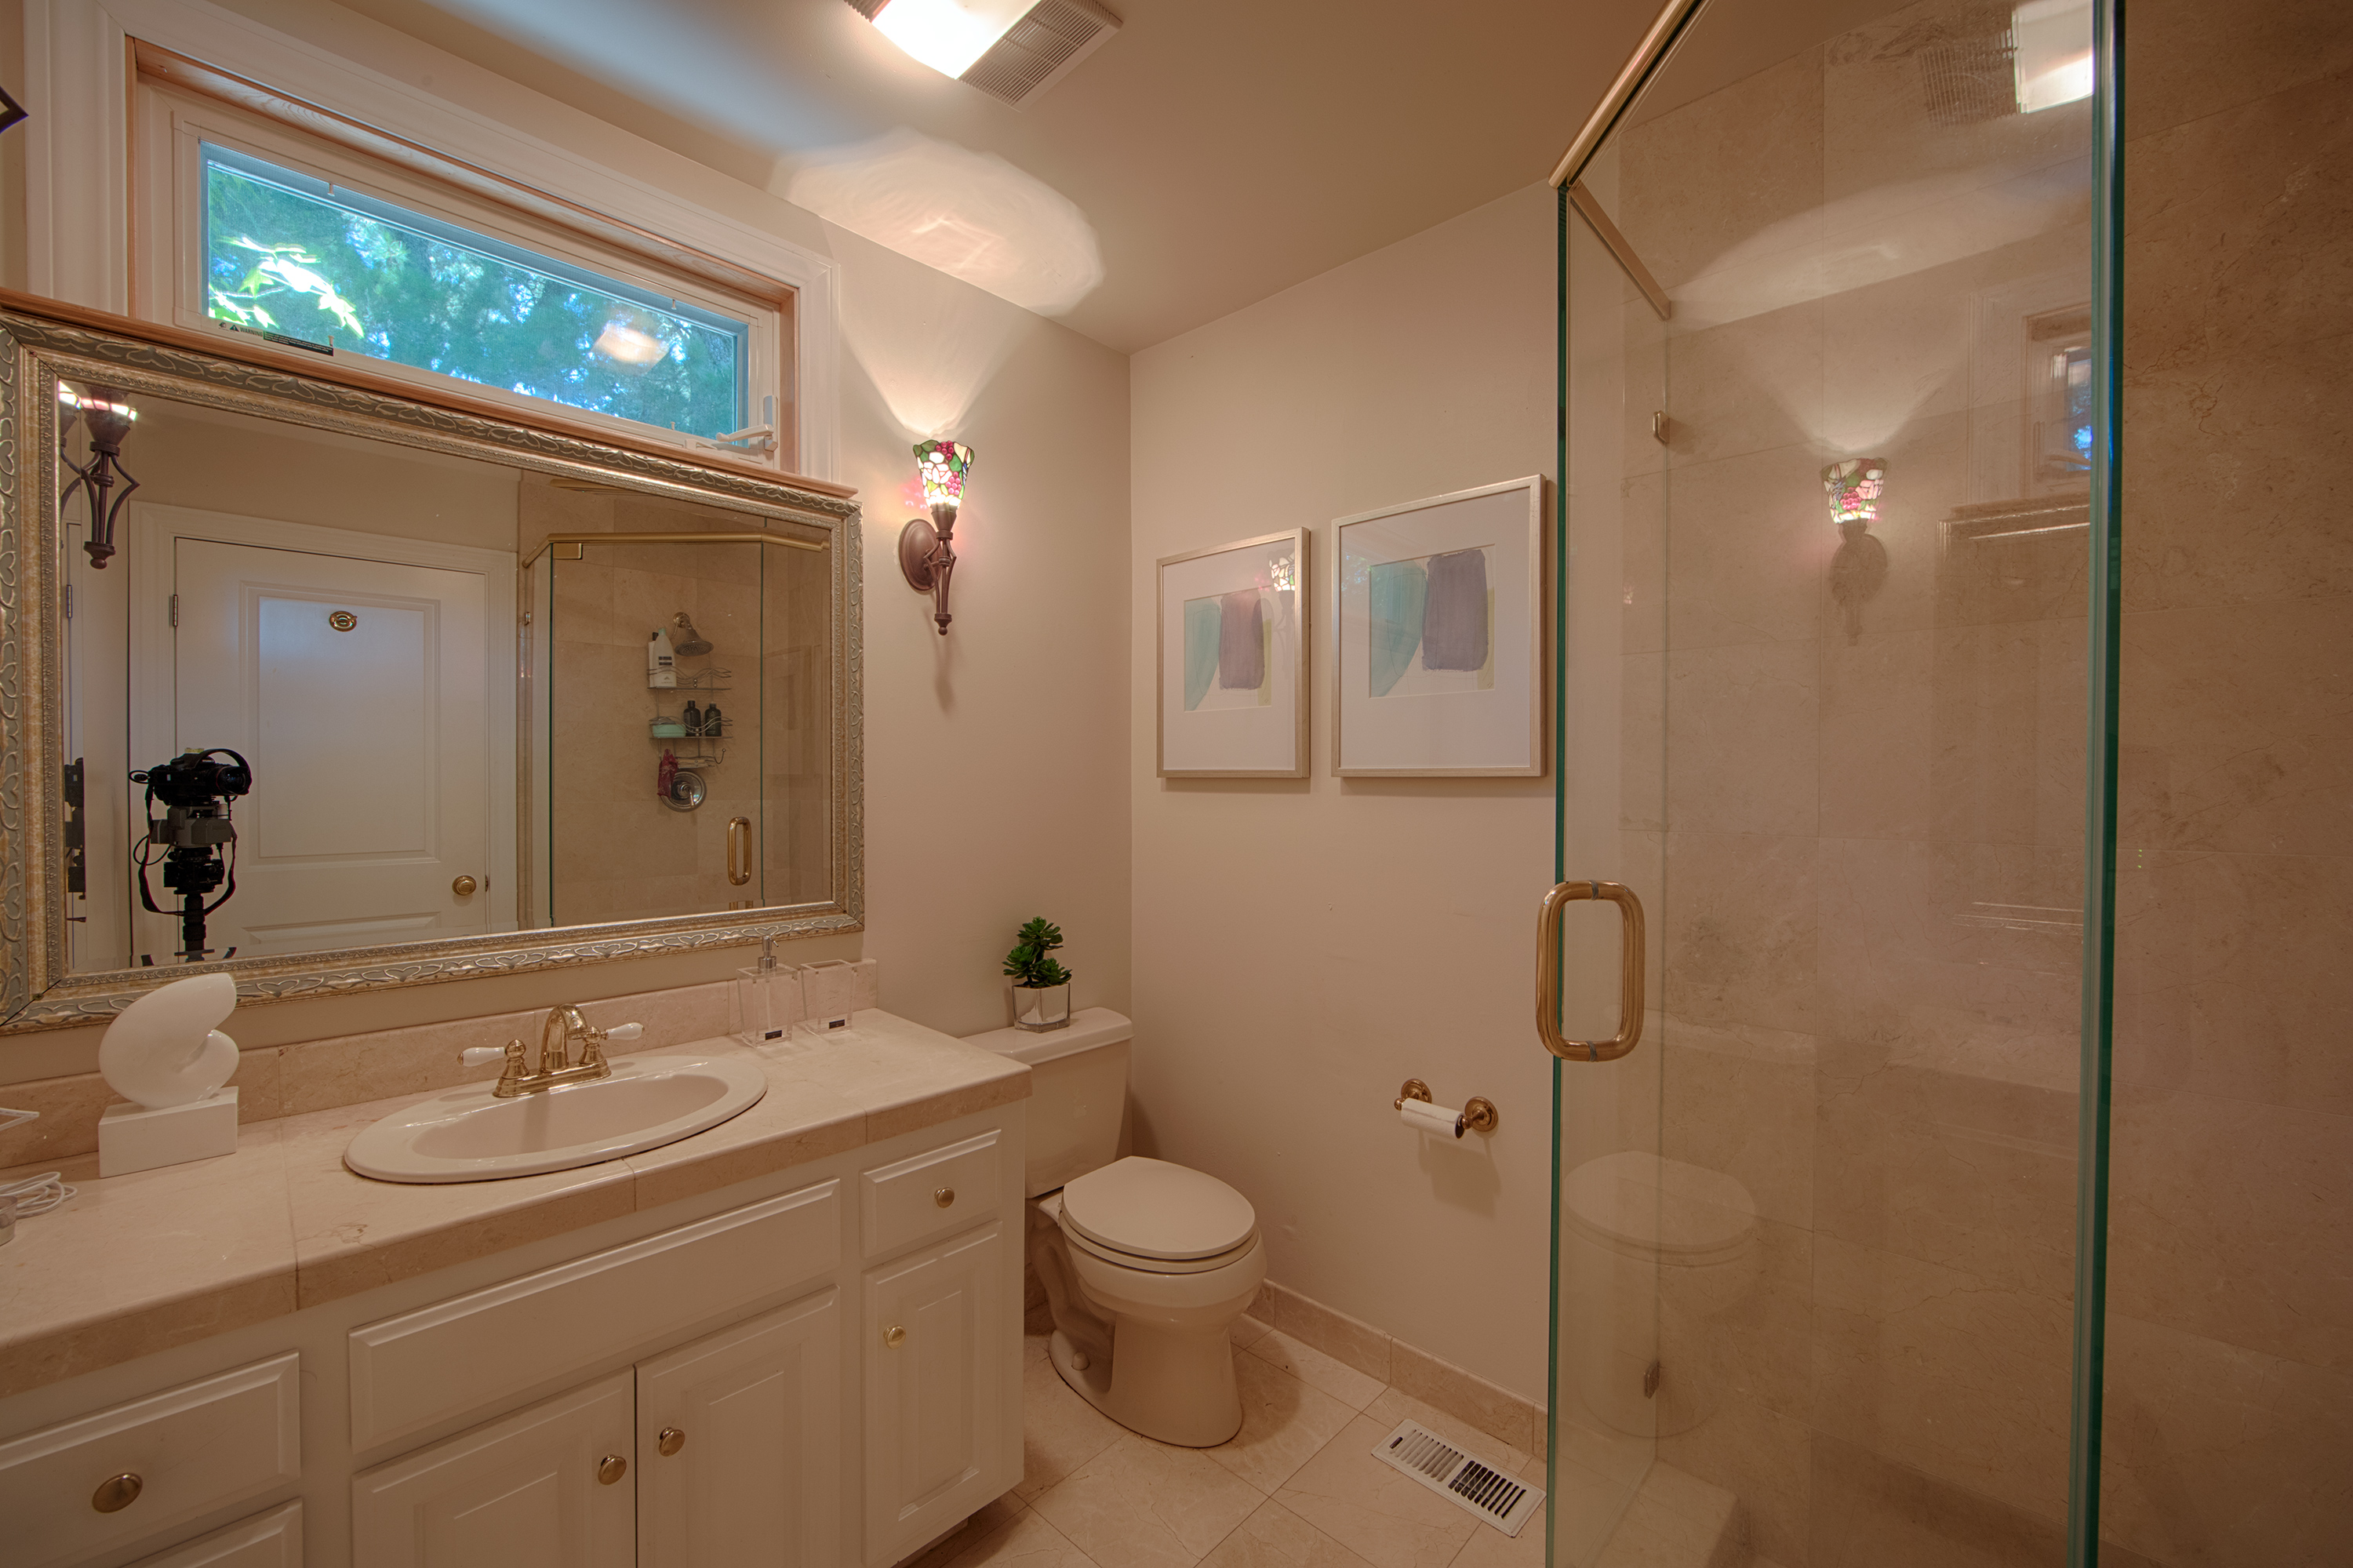 1 Quail Ct, Woodside 94062 - Bathroom 2 (A)